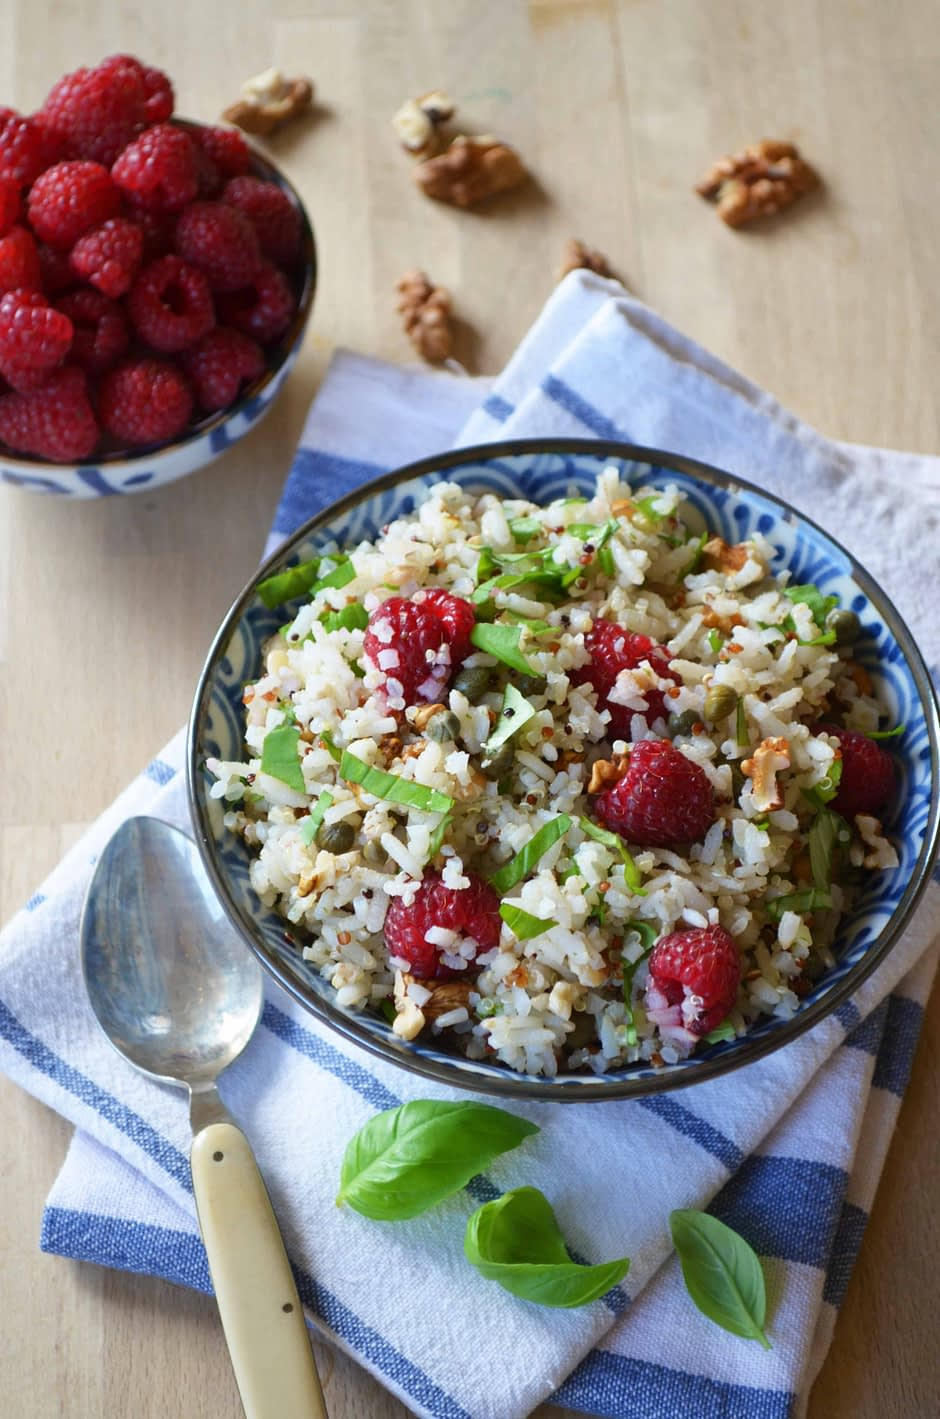 Bowl of grain salad with raspbberries, basil and walnuts. Recipe and photo by That Healthy Kitchen